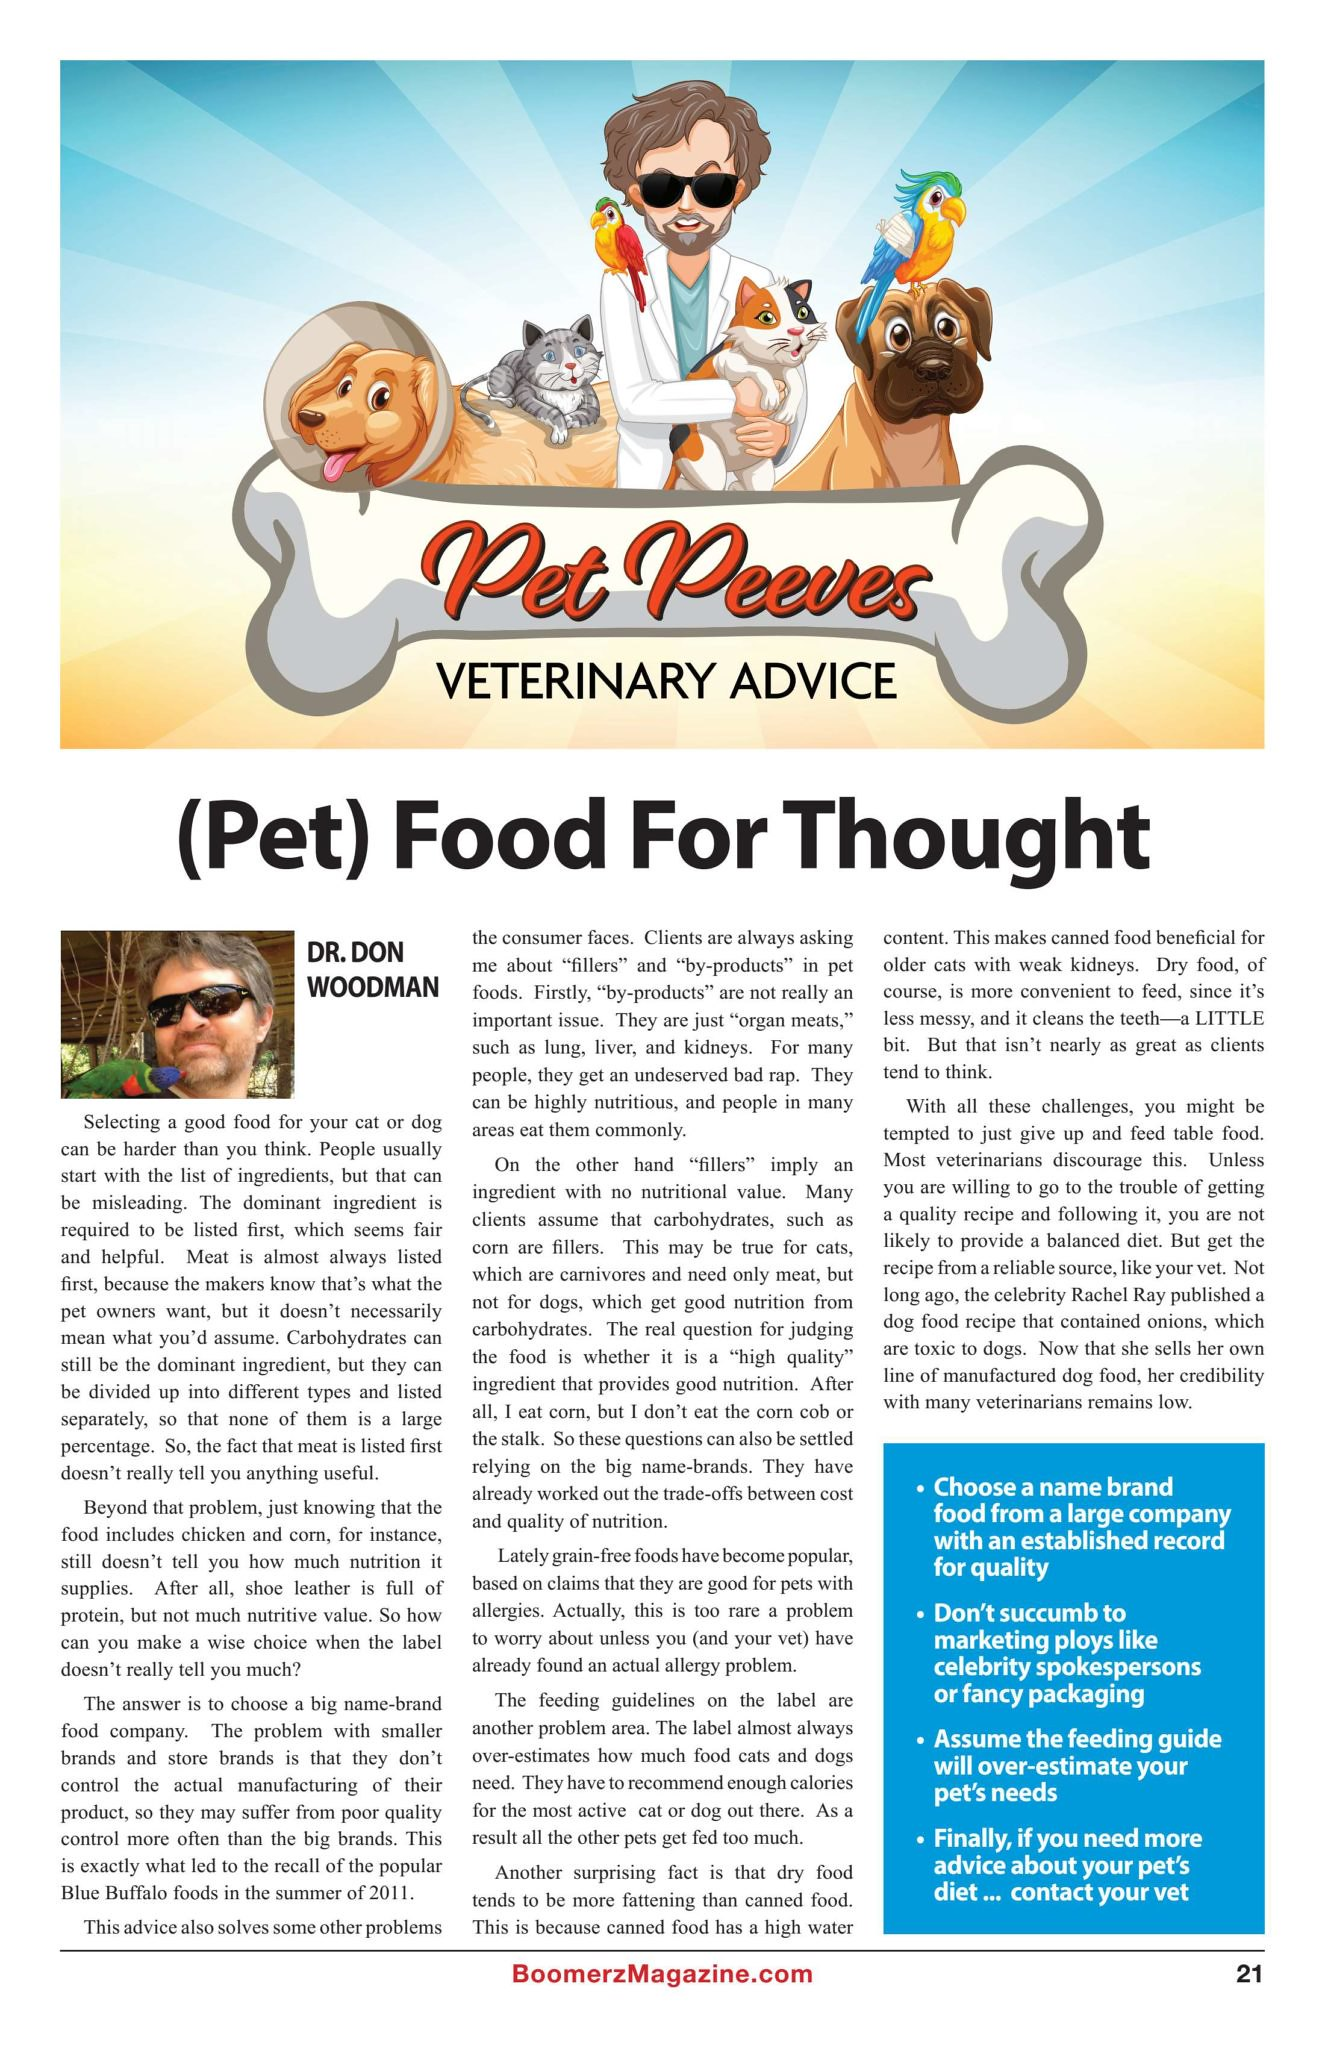 Boomerz Magazine 2018 November Pet Peeves Pet Food For Thought